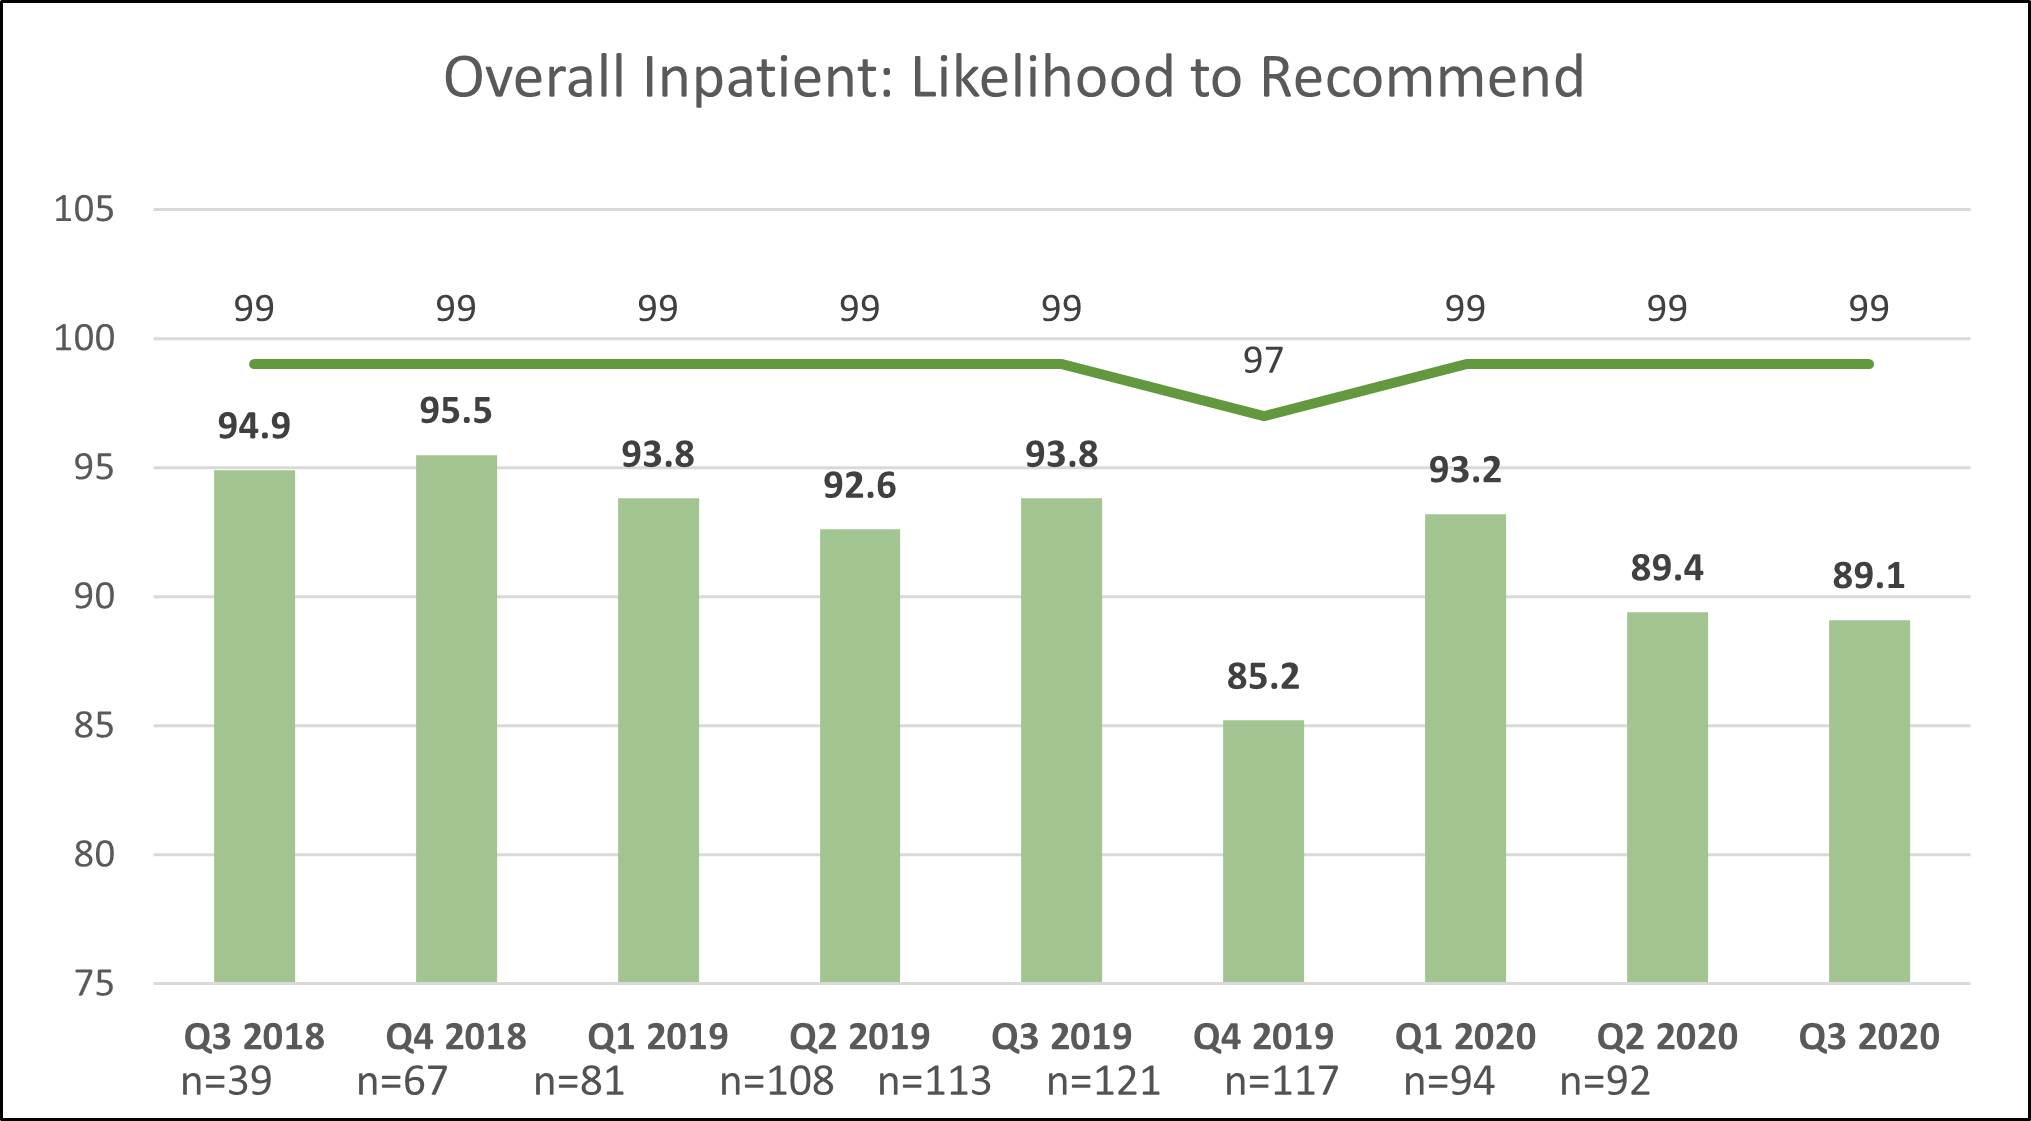 OV Inpatient Likelihood to Recommend